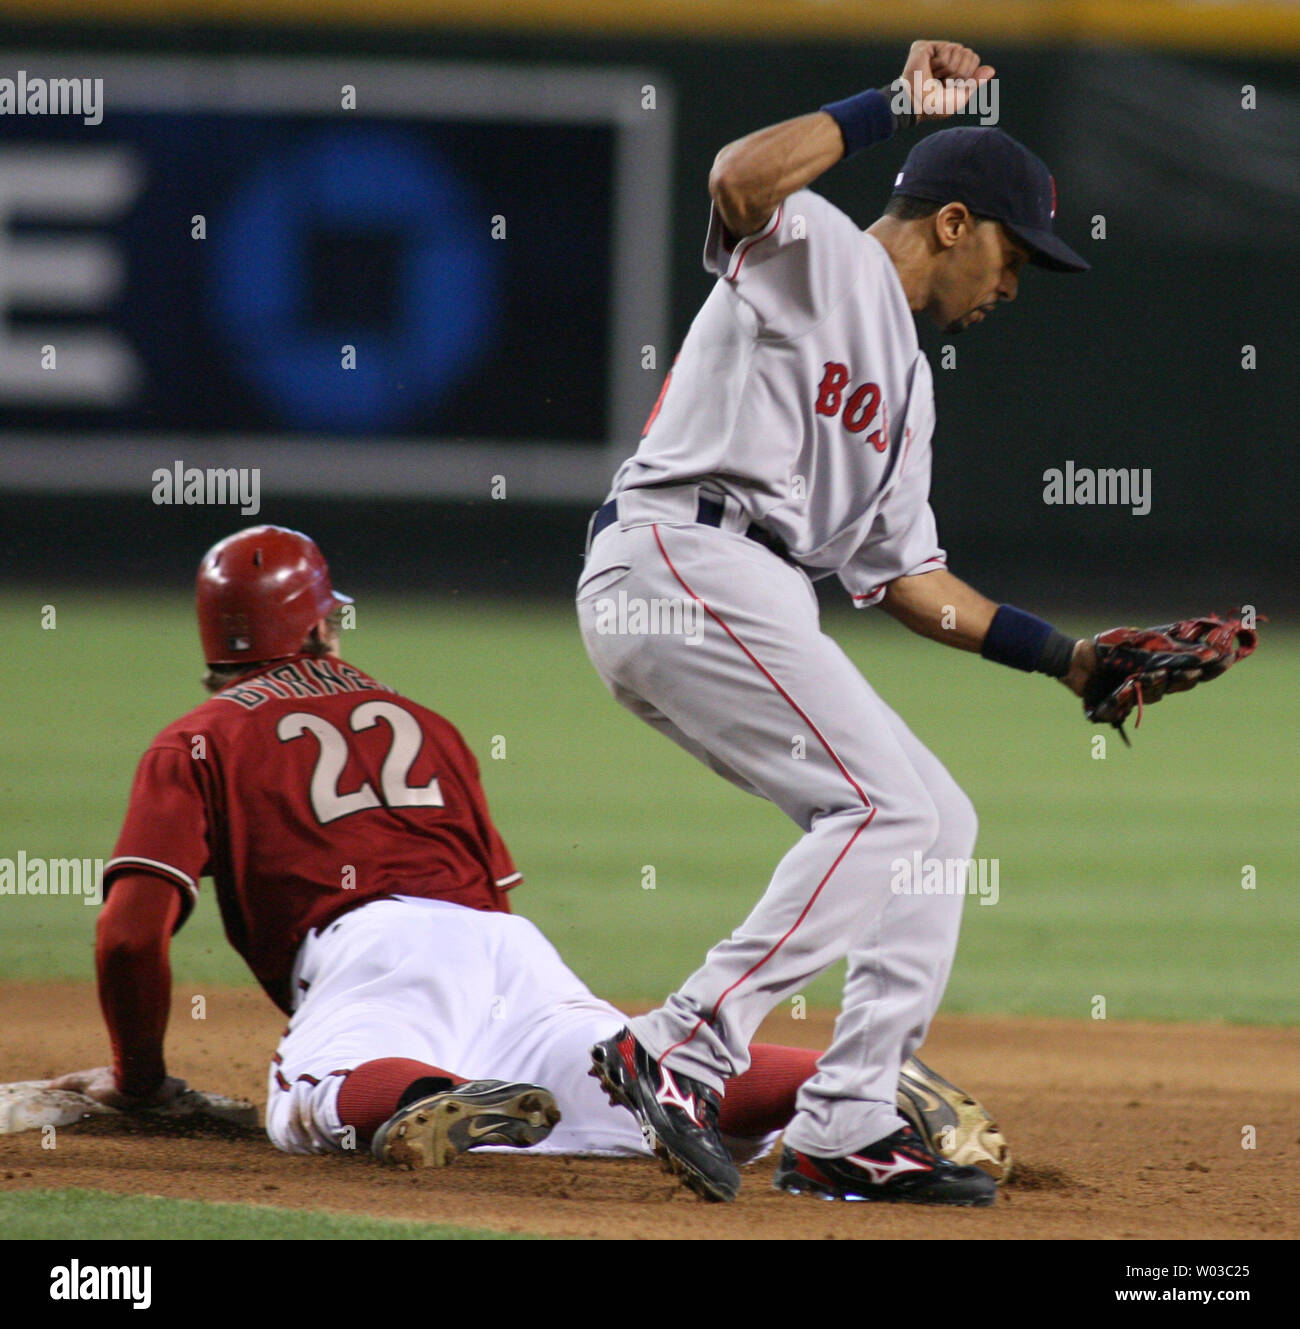 Diamondbacks Eric Byrnes (22) looks to centerfield as Red Sox shortstop Julio Lugo (right) comes down without the ball during the the fifth inning against the Boston Red Sox at Chase Field in Phoenix on June 10,2007.  The ball went into centerfield and Byrnes advanced to third base on the play. (UPI Photo/Art Foxall) Stock Photo